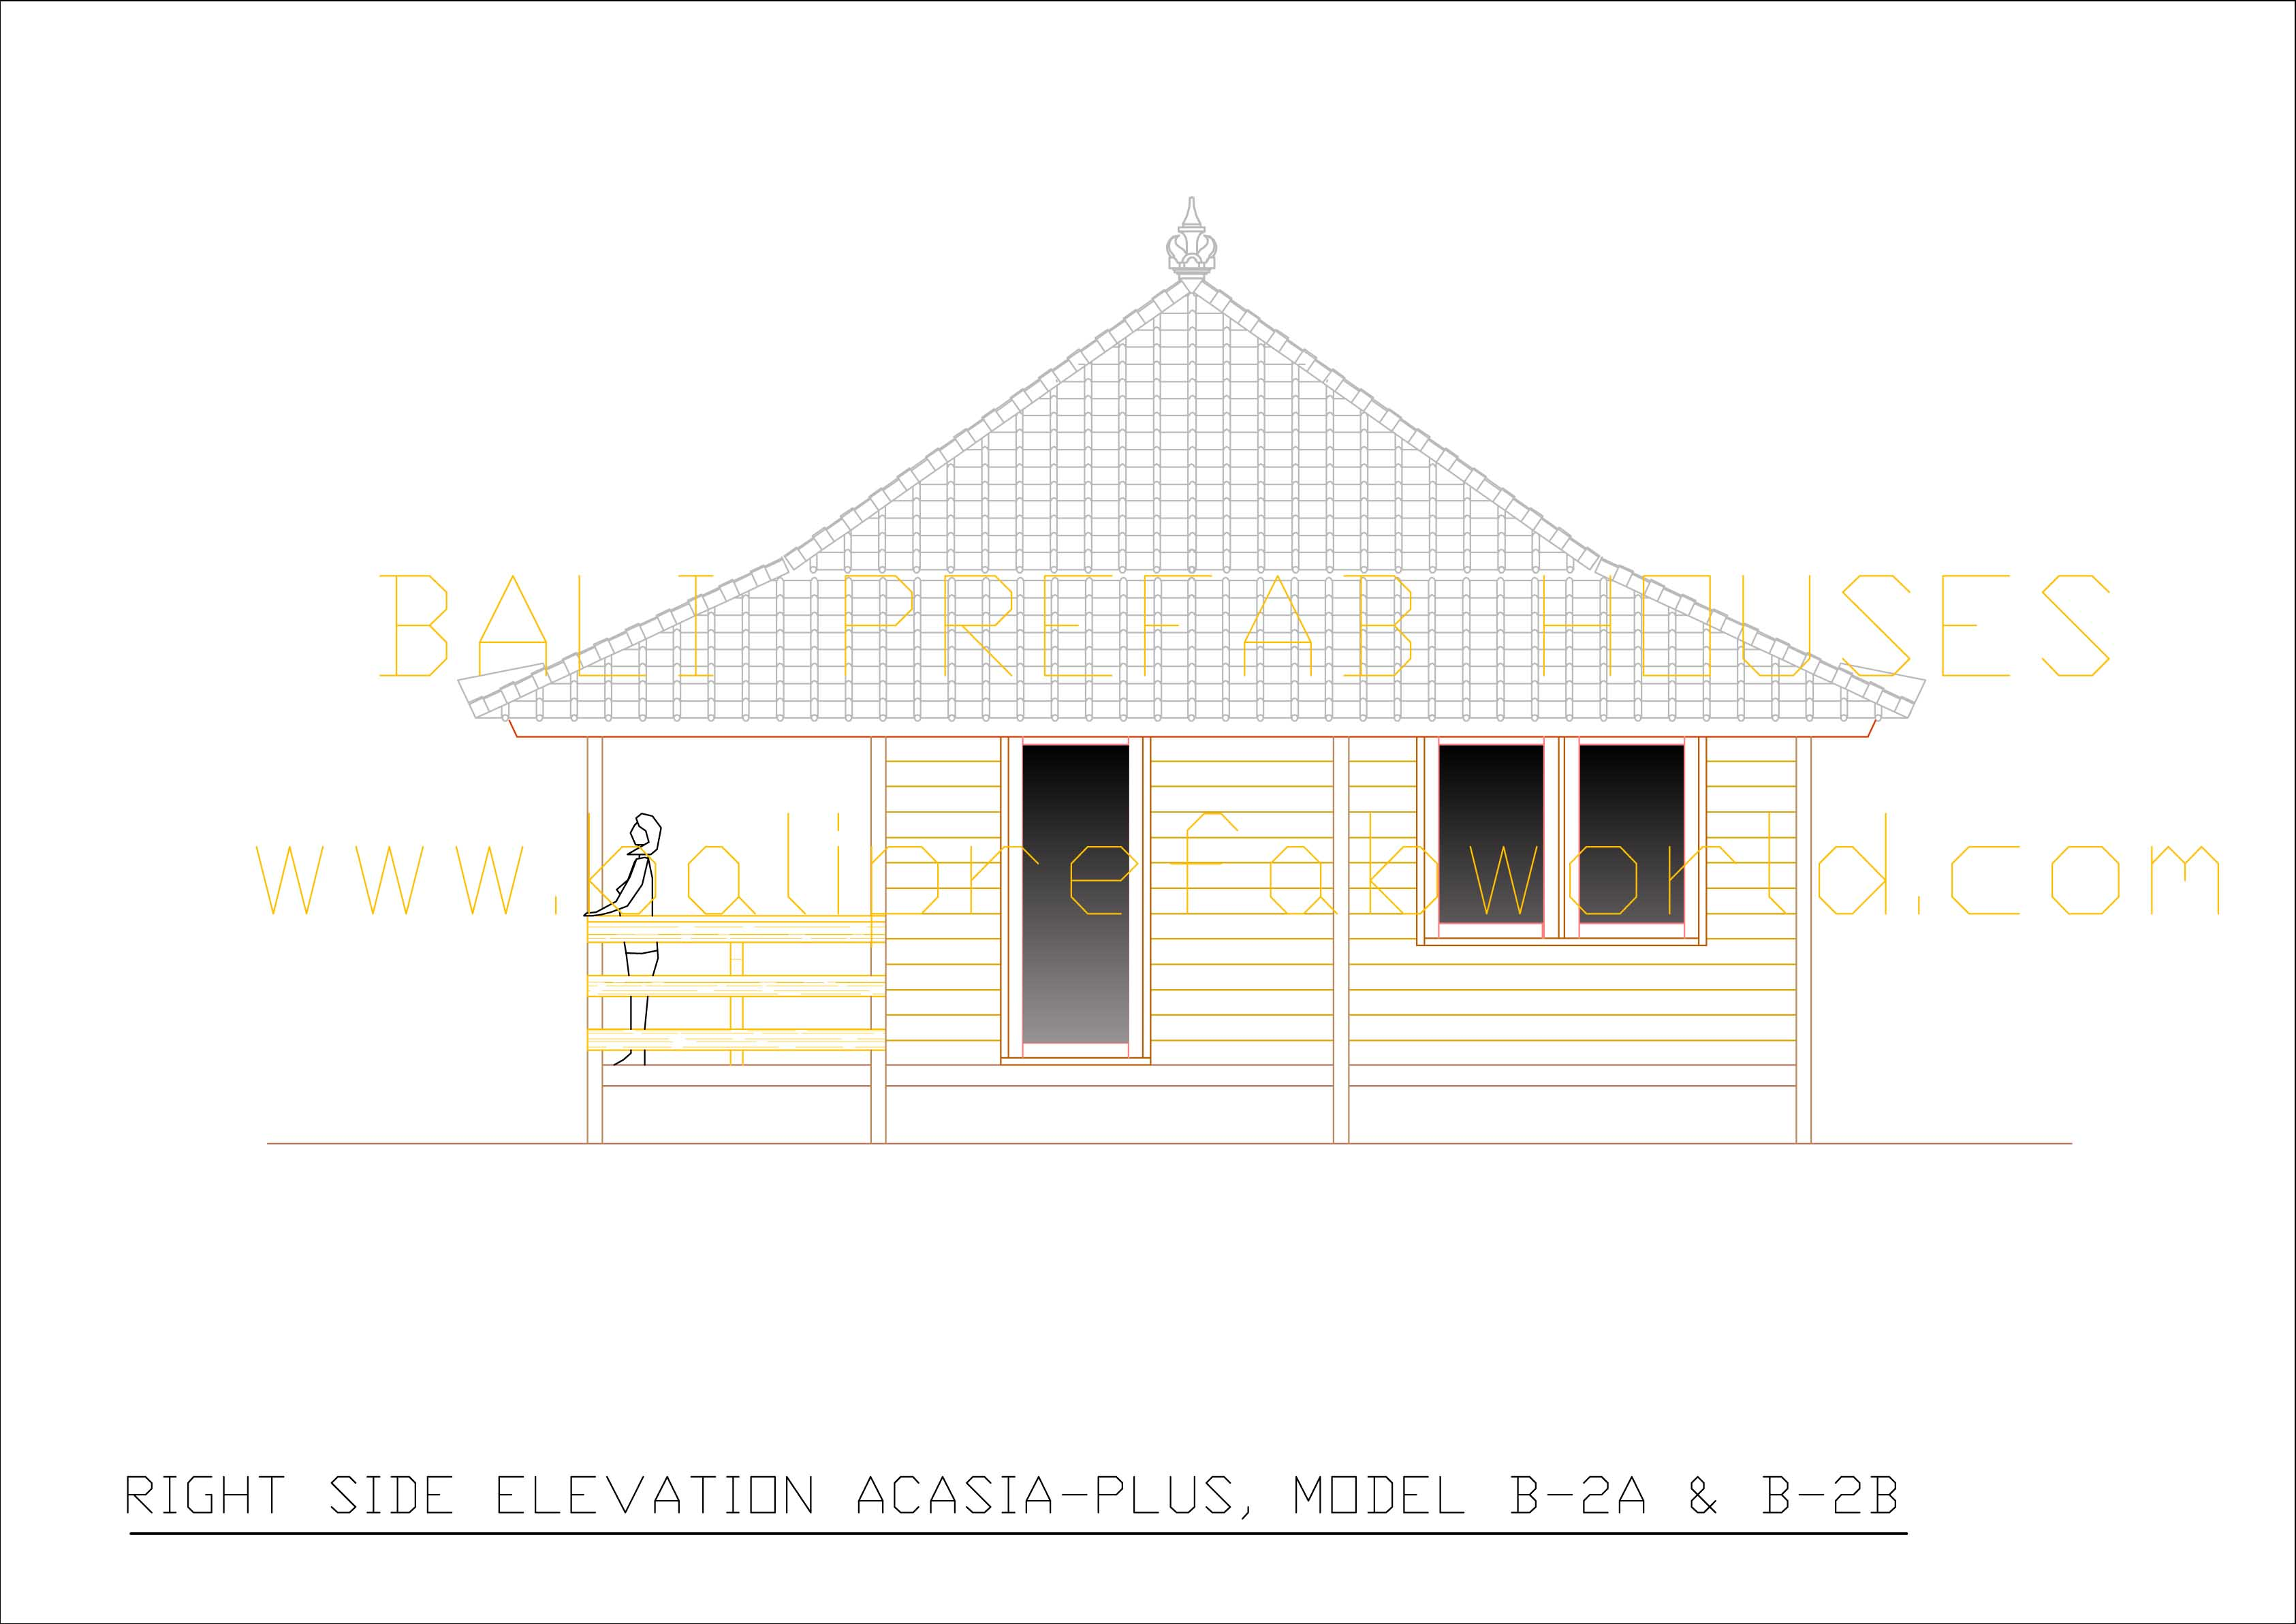 Acasia-plus right side elevation